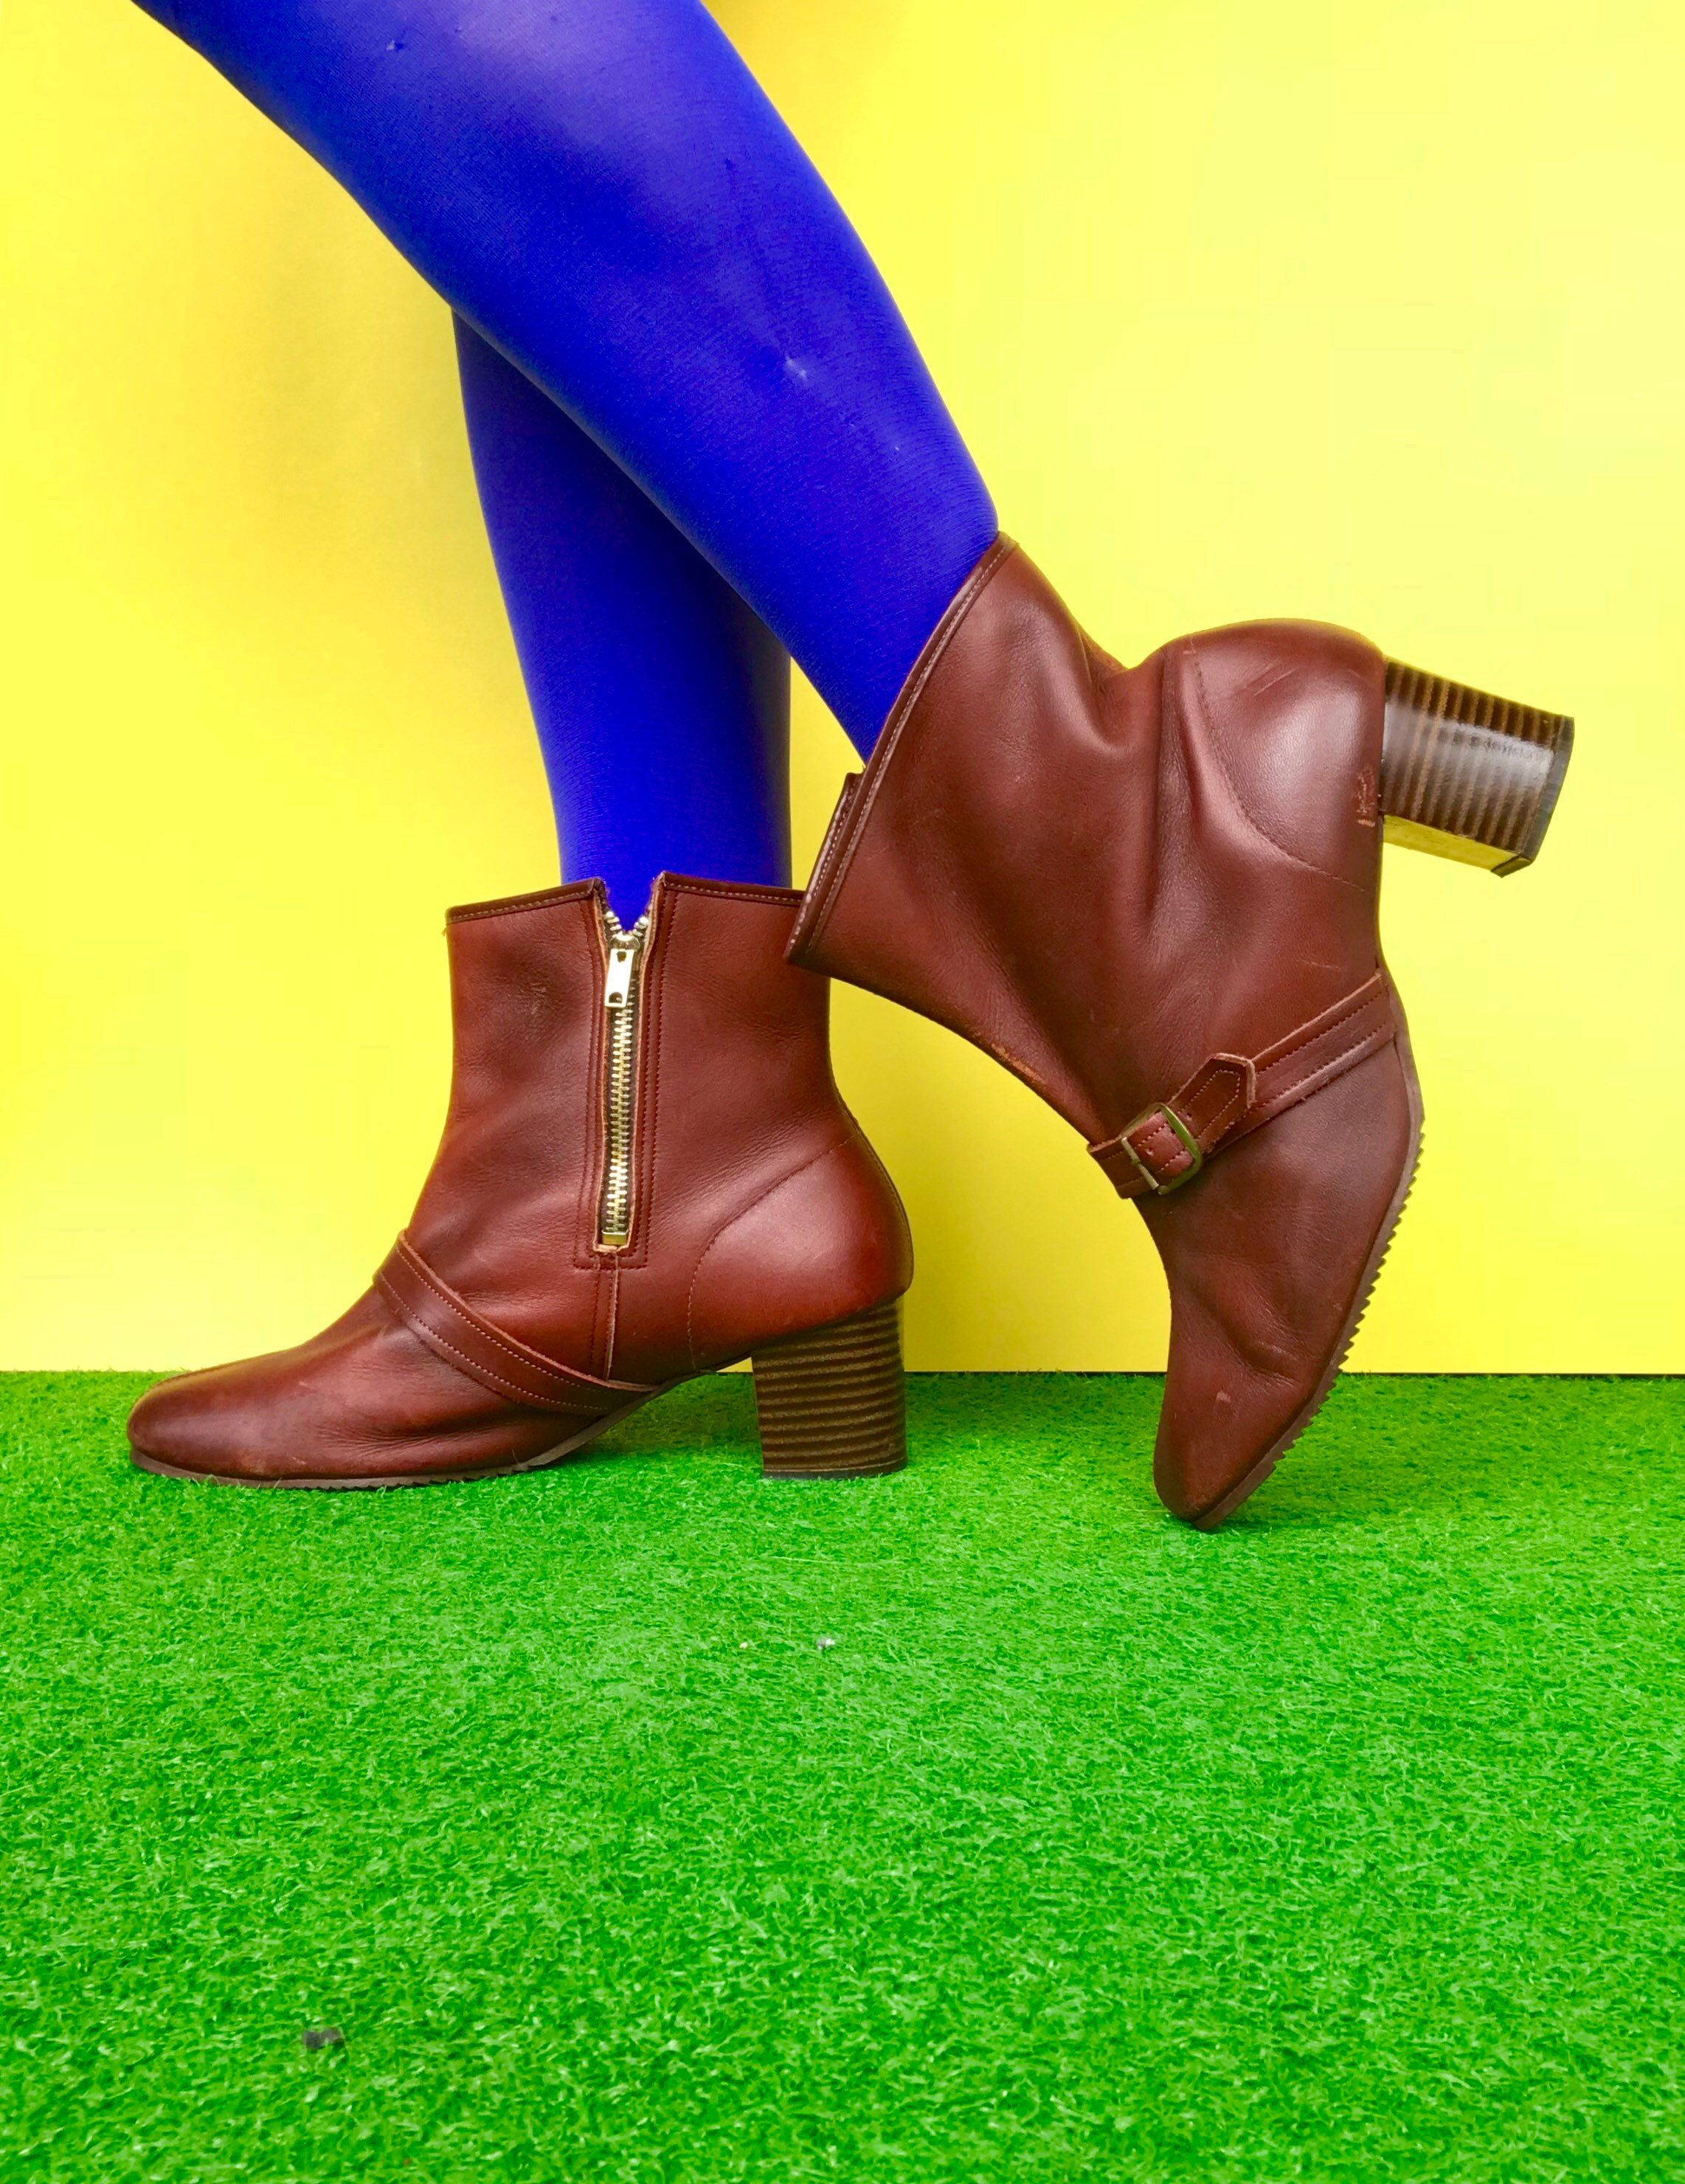 ca534db179fba Mod 1960 70s ankle booties vintage 60s brown leather front buckle ...